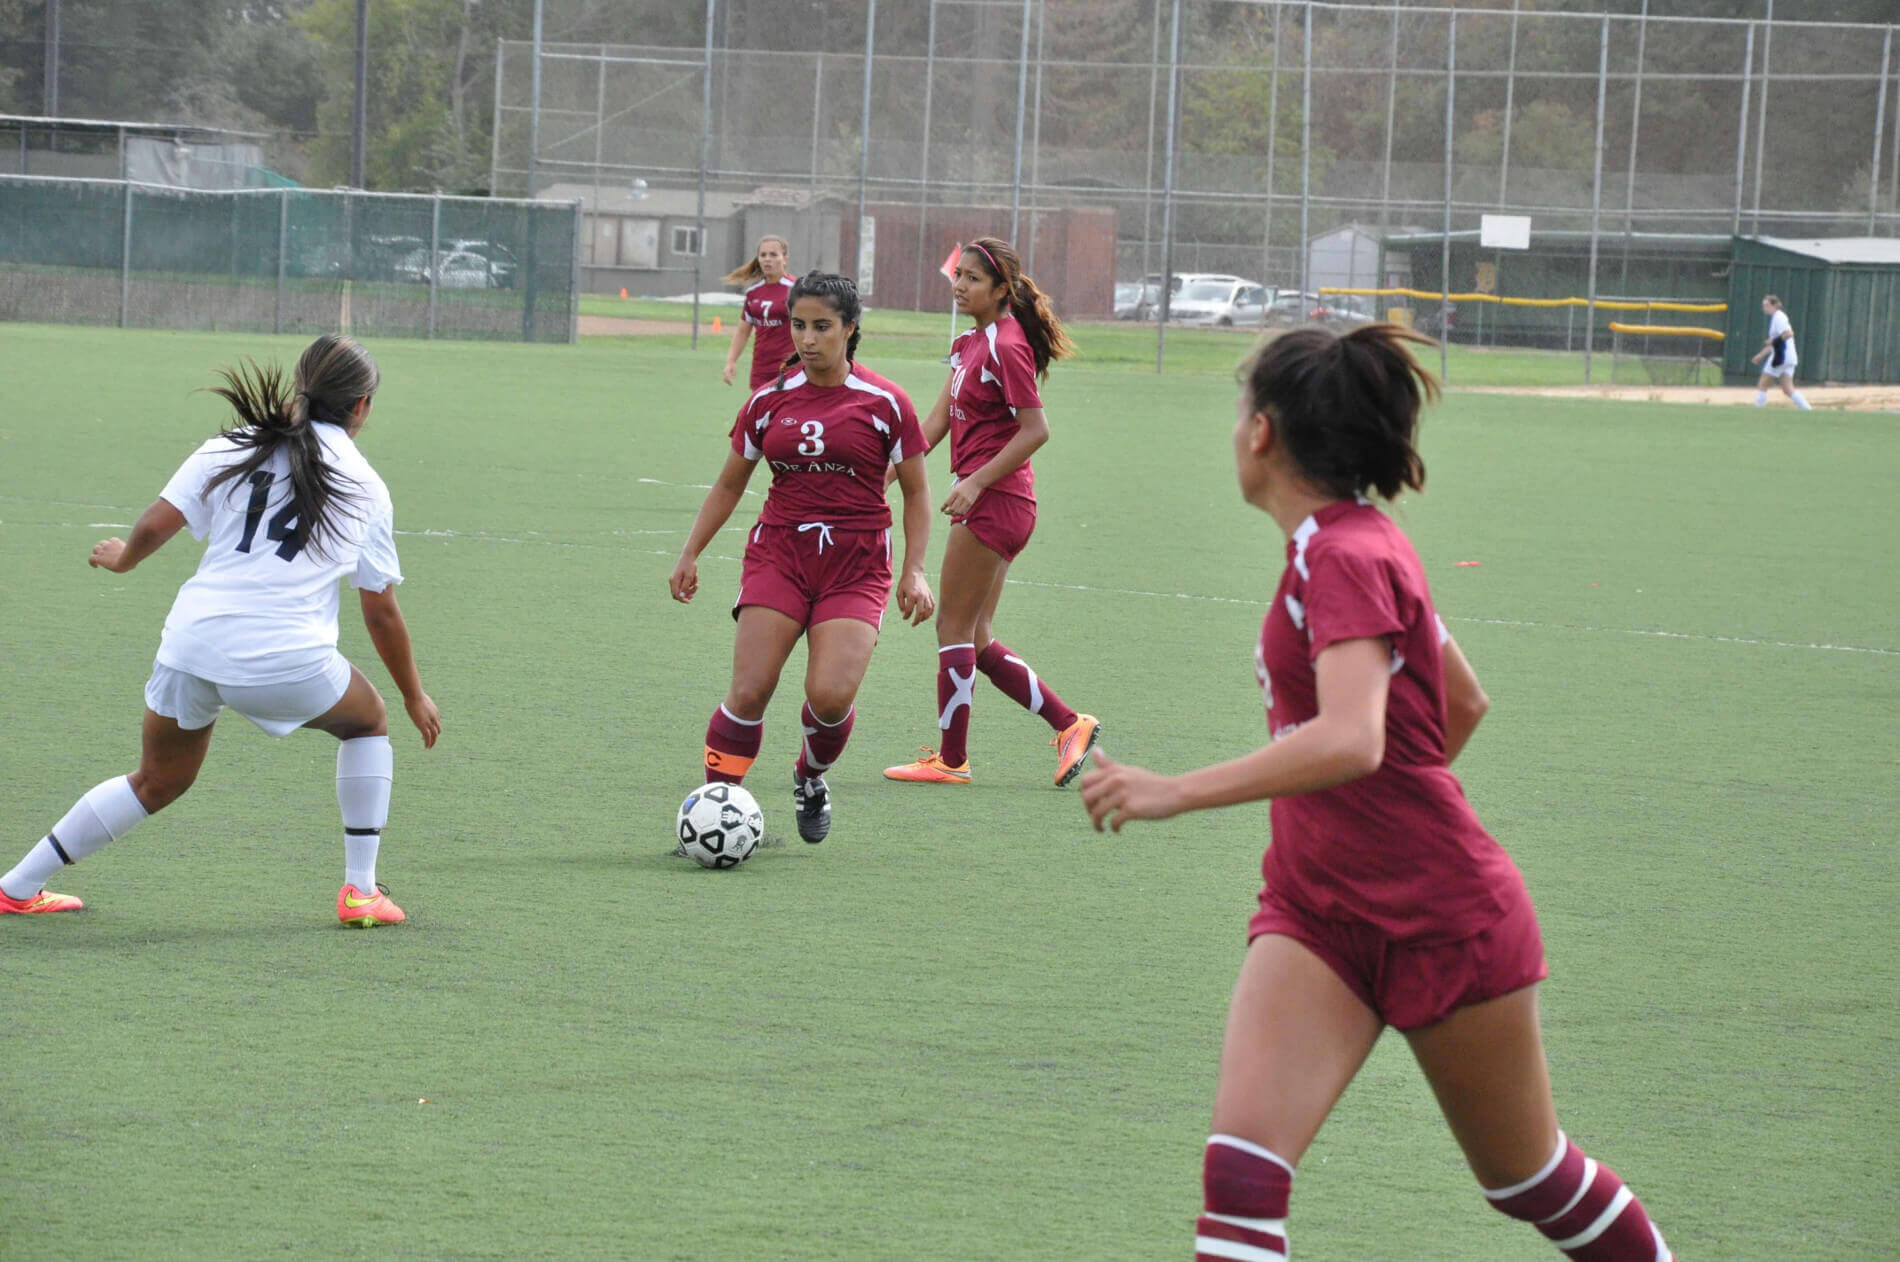 De Anza Women's Soccer player on the field